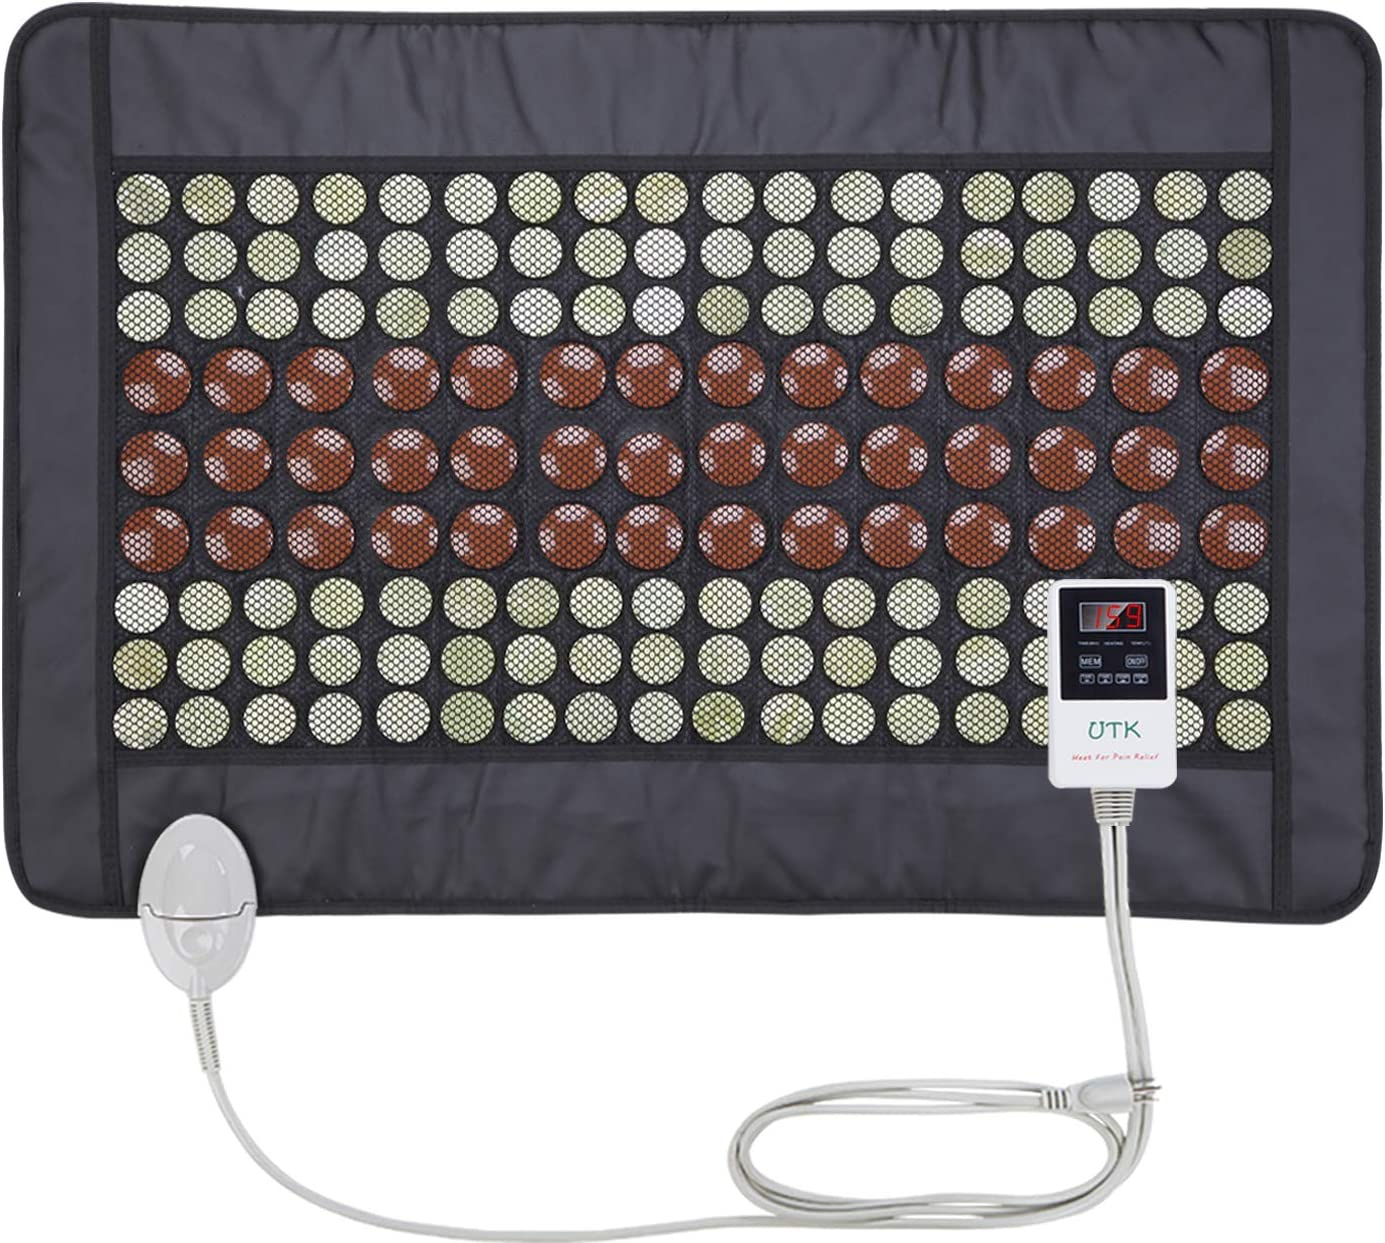 "UTK Far Infrared Heating Pad for Back Pain Neck Pain Cramps 21""x31"" [FSA or HSA Eligible] Dense 108 Jade and 42 Tourmaline Stones Matrix 150 Watt Fast Heat Up Storage Bag Included [Model Medium pro]"